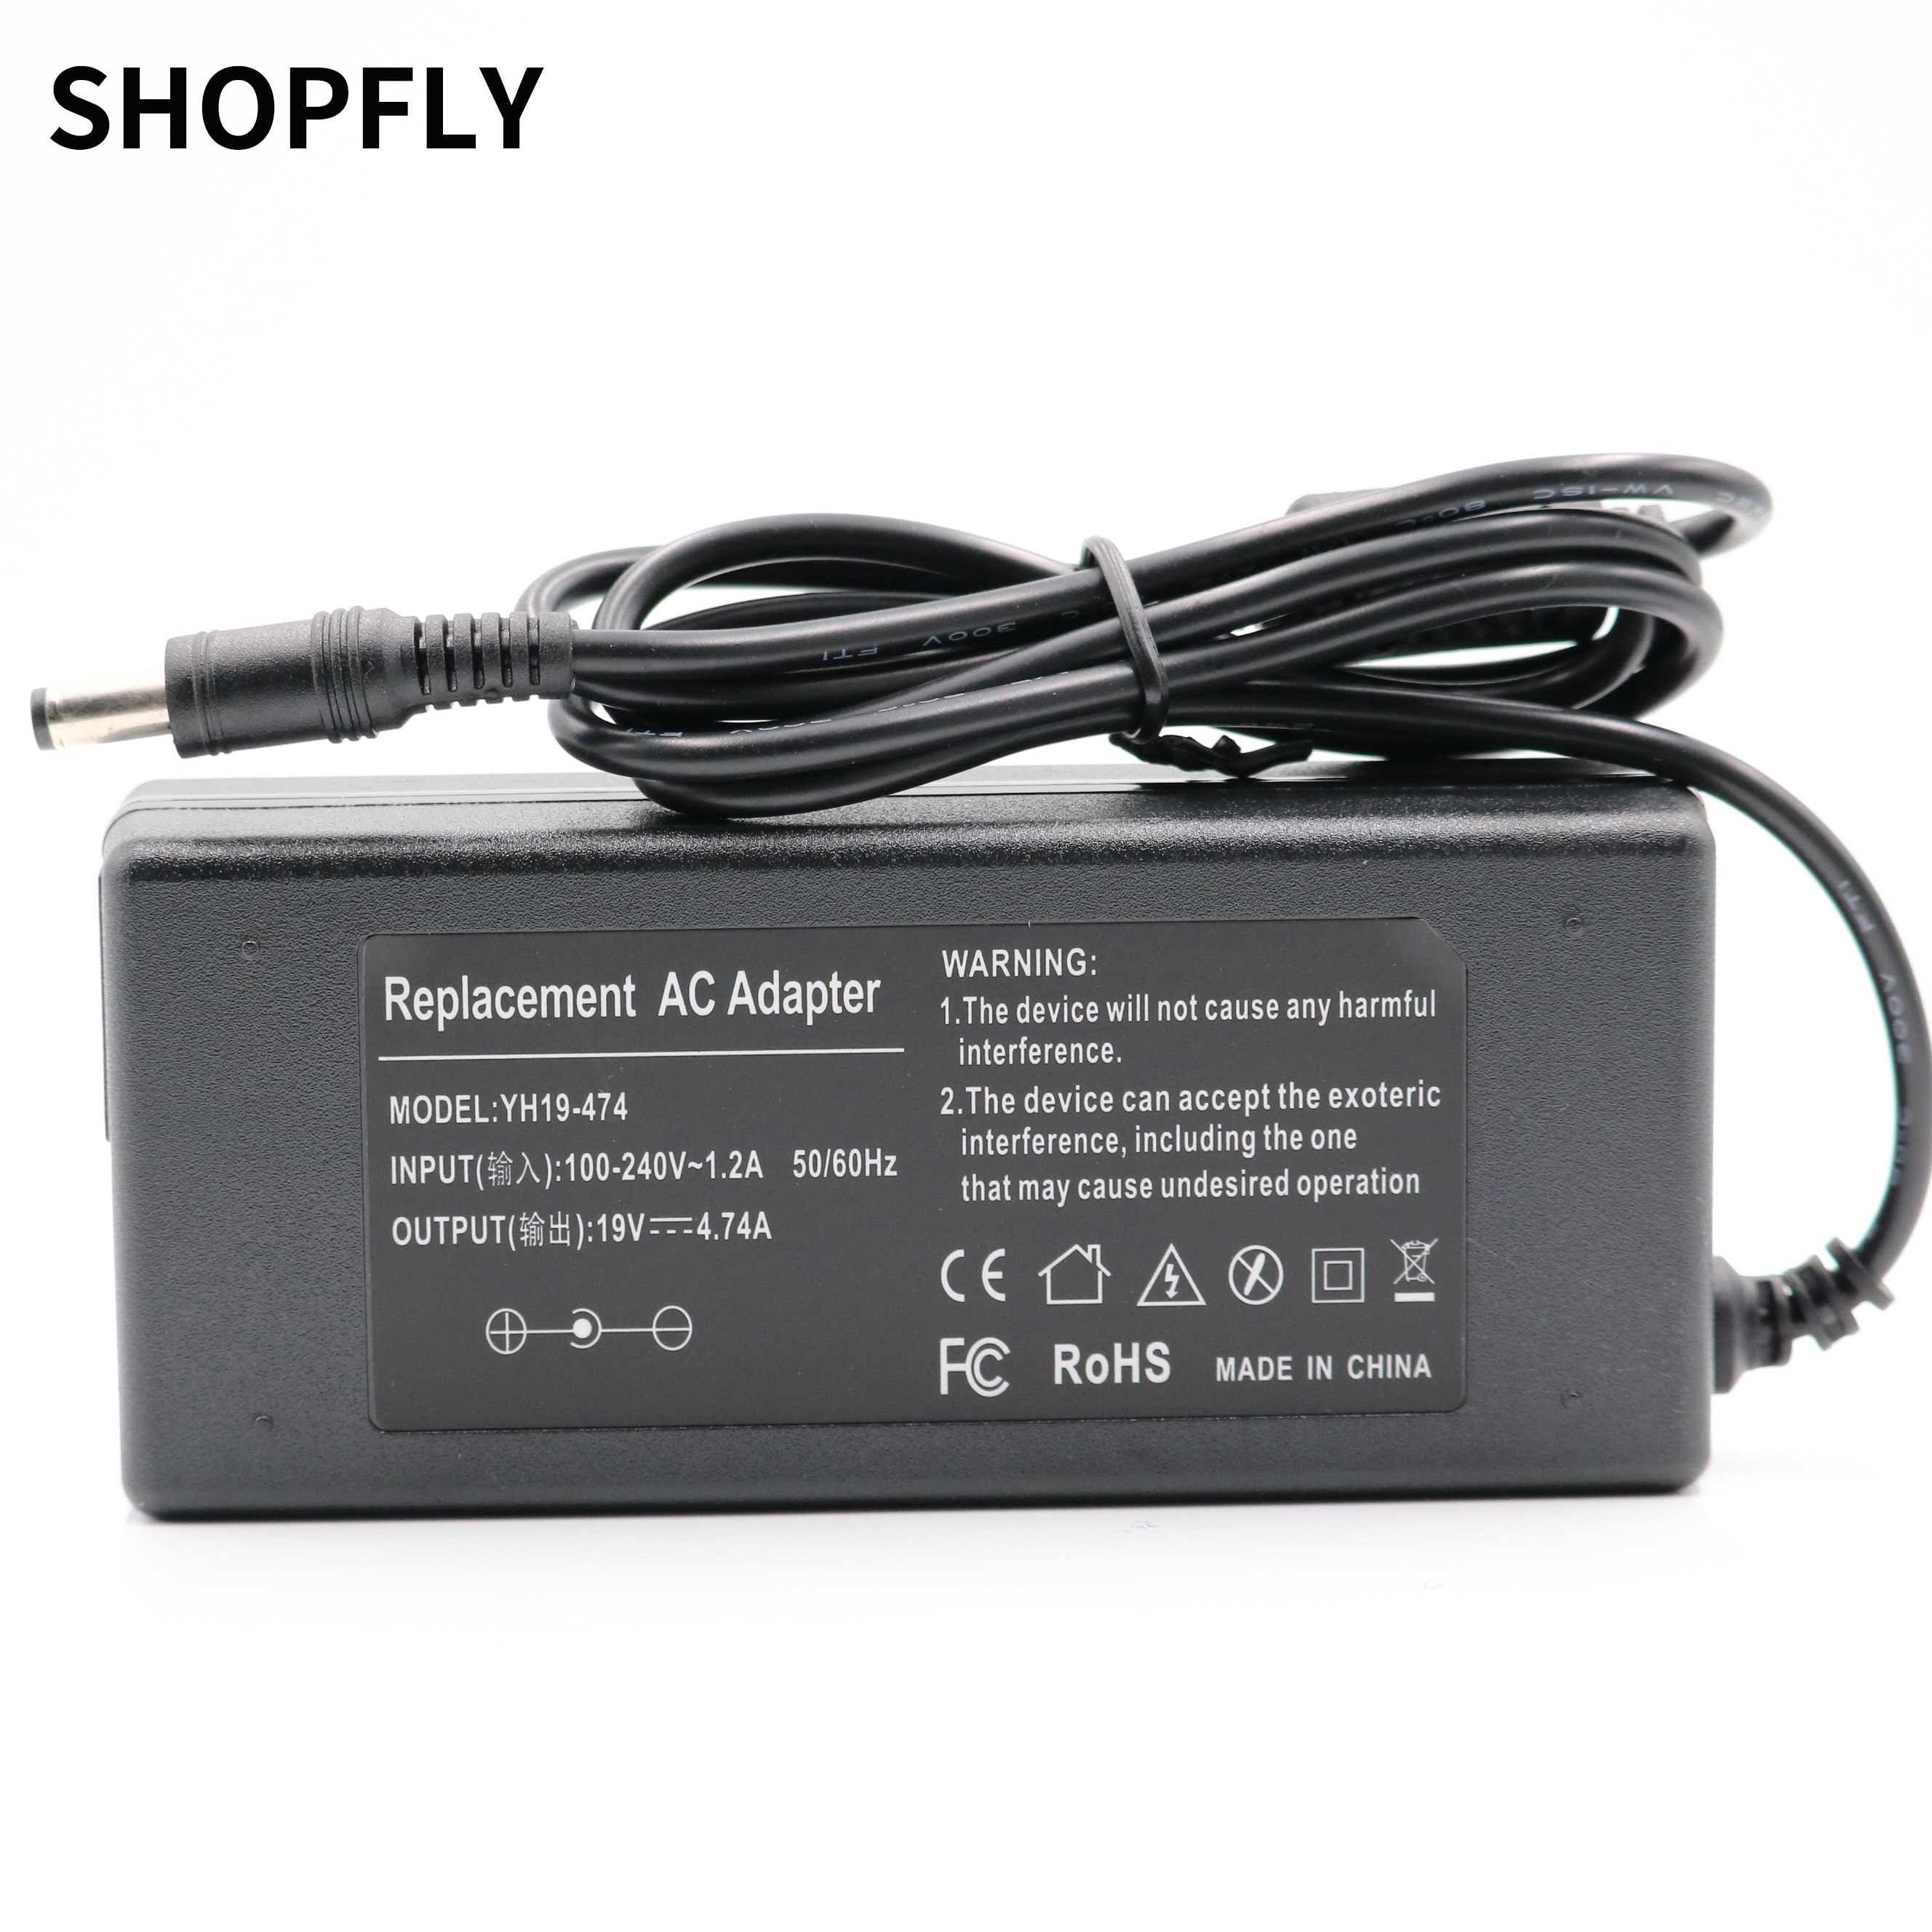 Notebook Computer Laptop Adapter Replacements Fit For ASUS Toshiba 19V 4.74A Laptop Adapter Charger Power Supply F0761